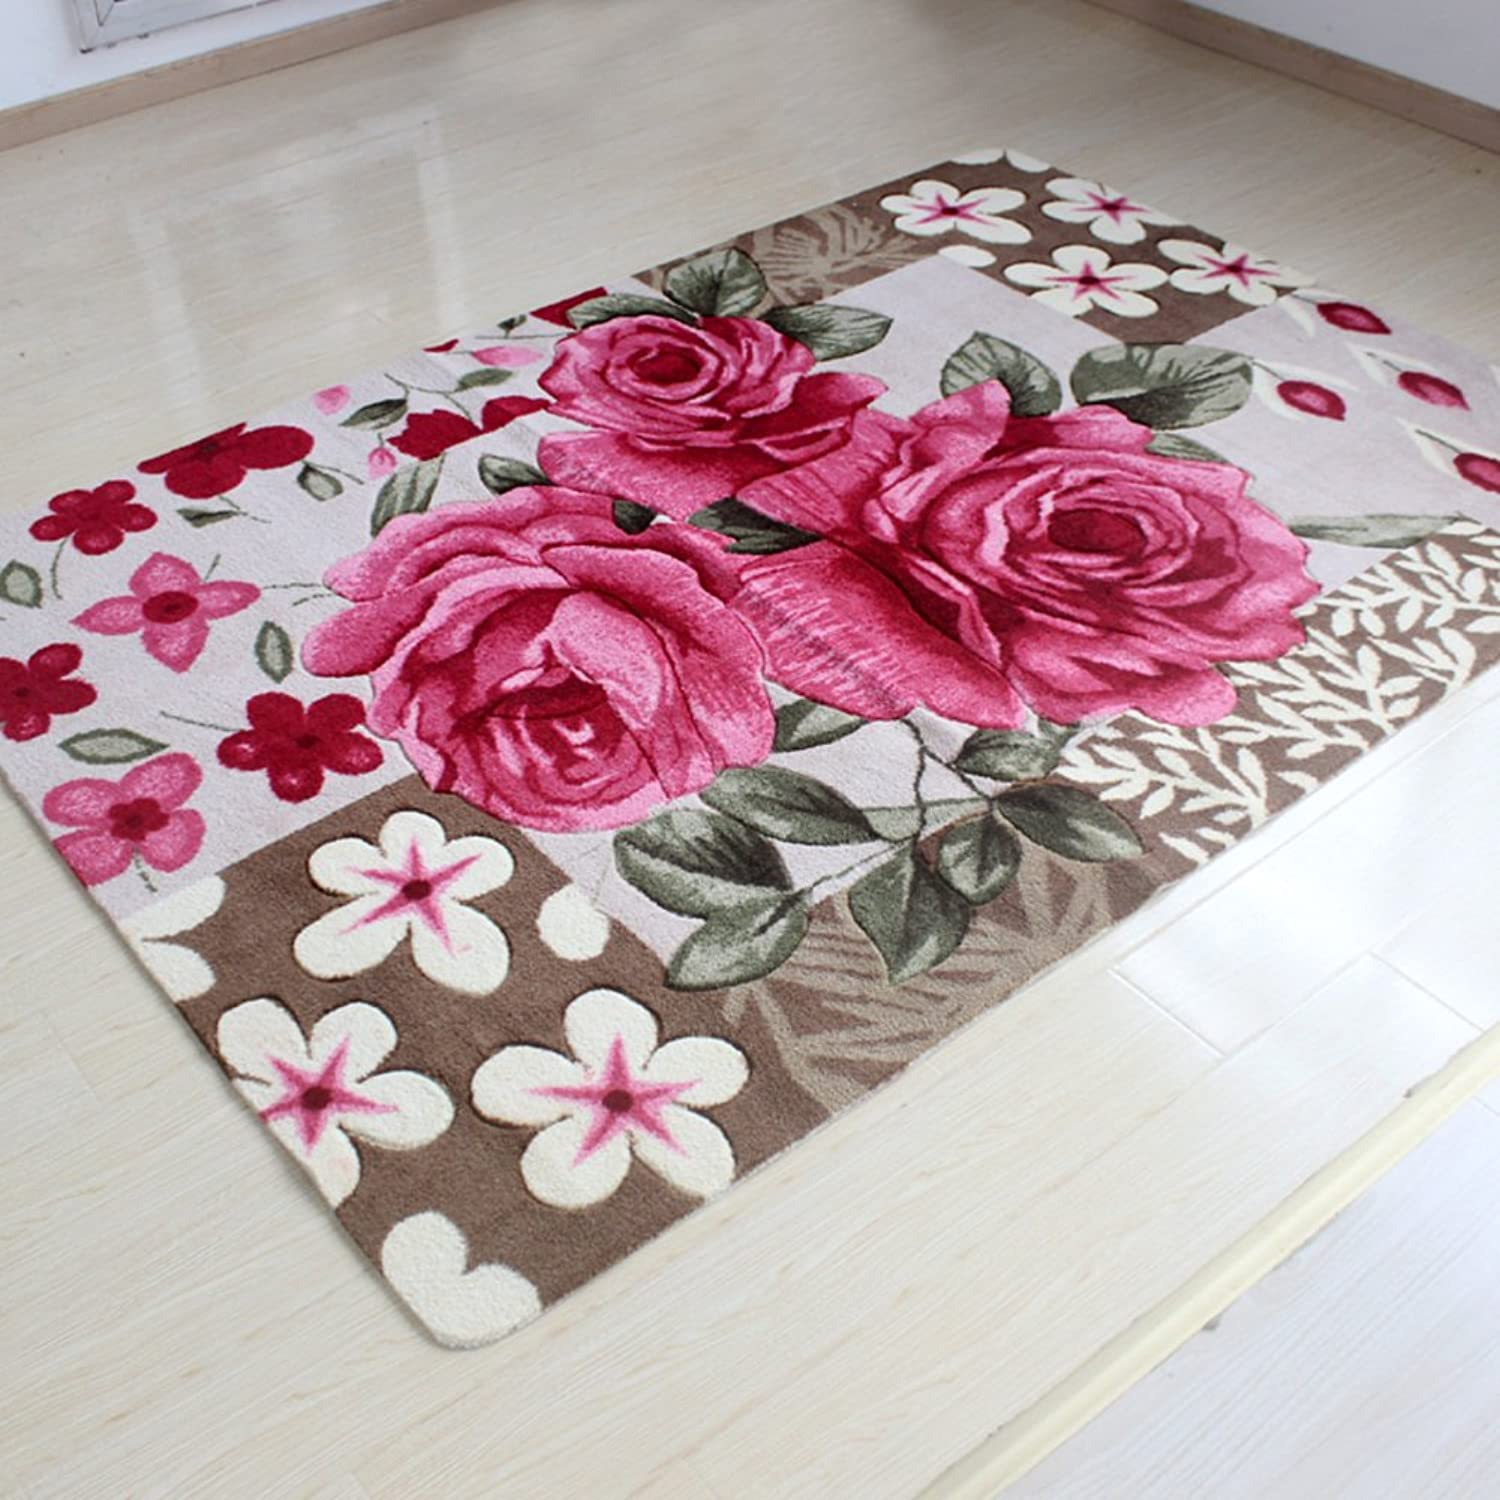 Rugs Bathroom Rugs Kitchen Rugs Small Rugs with Rubber backingsmall Rug pad-A 58x88cm(23x35inch)